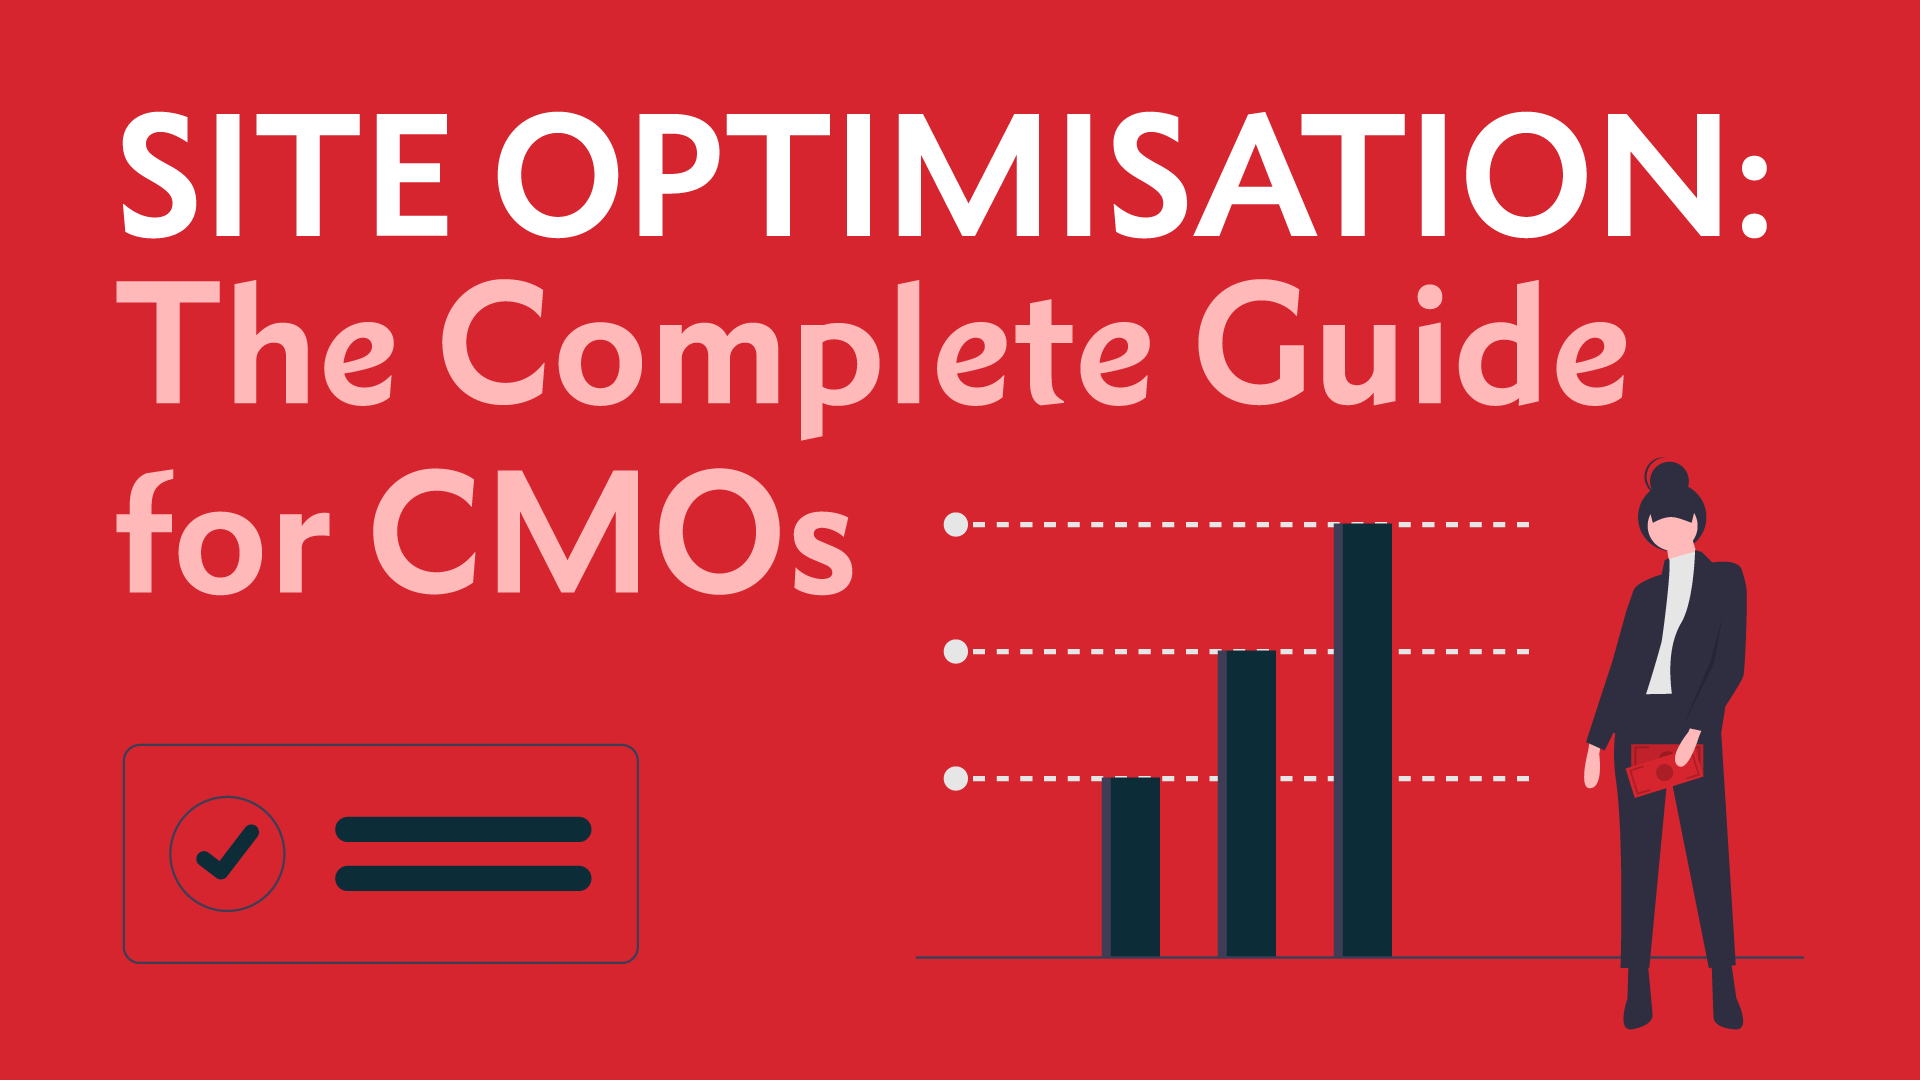 Site Optimisation: The Complete Guide for CMOs